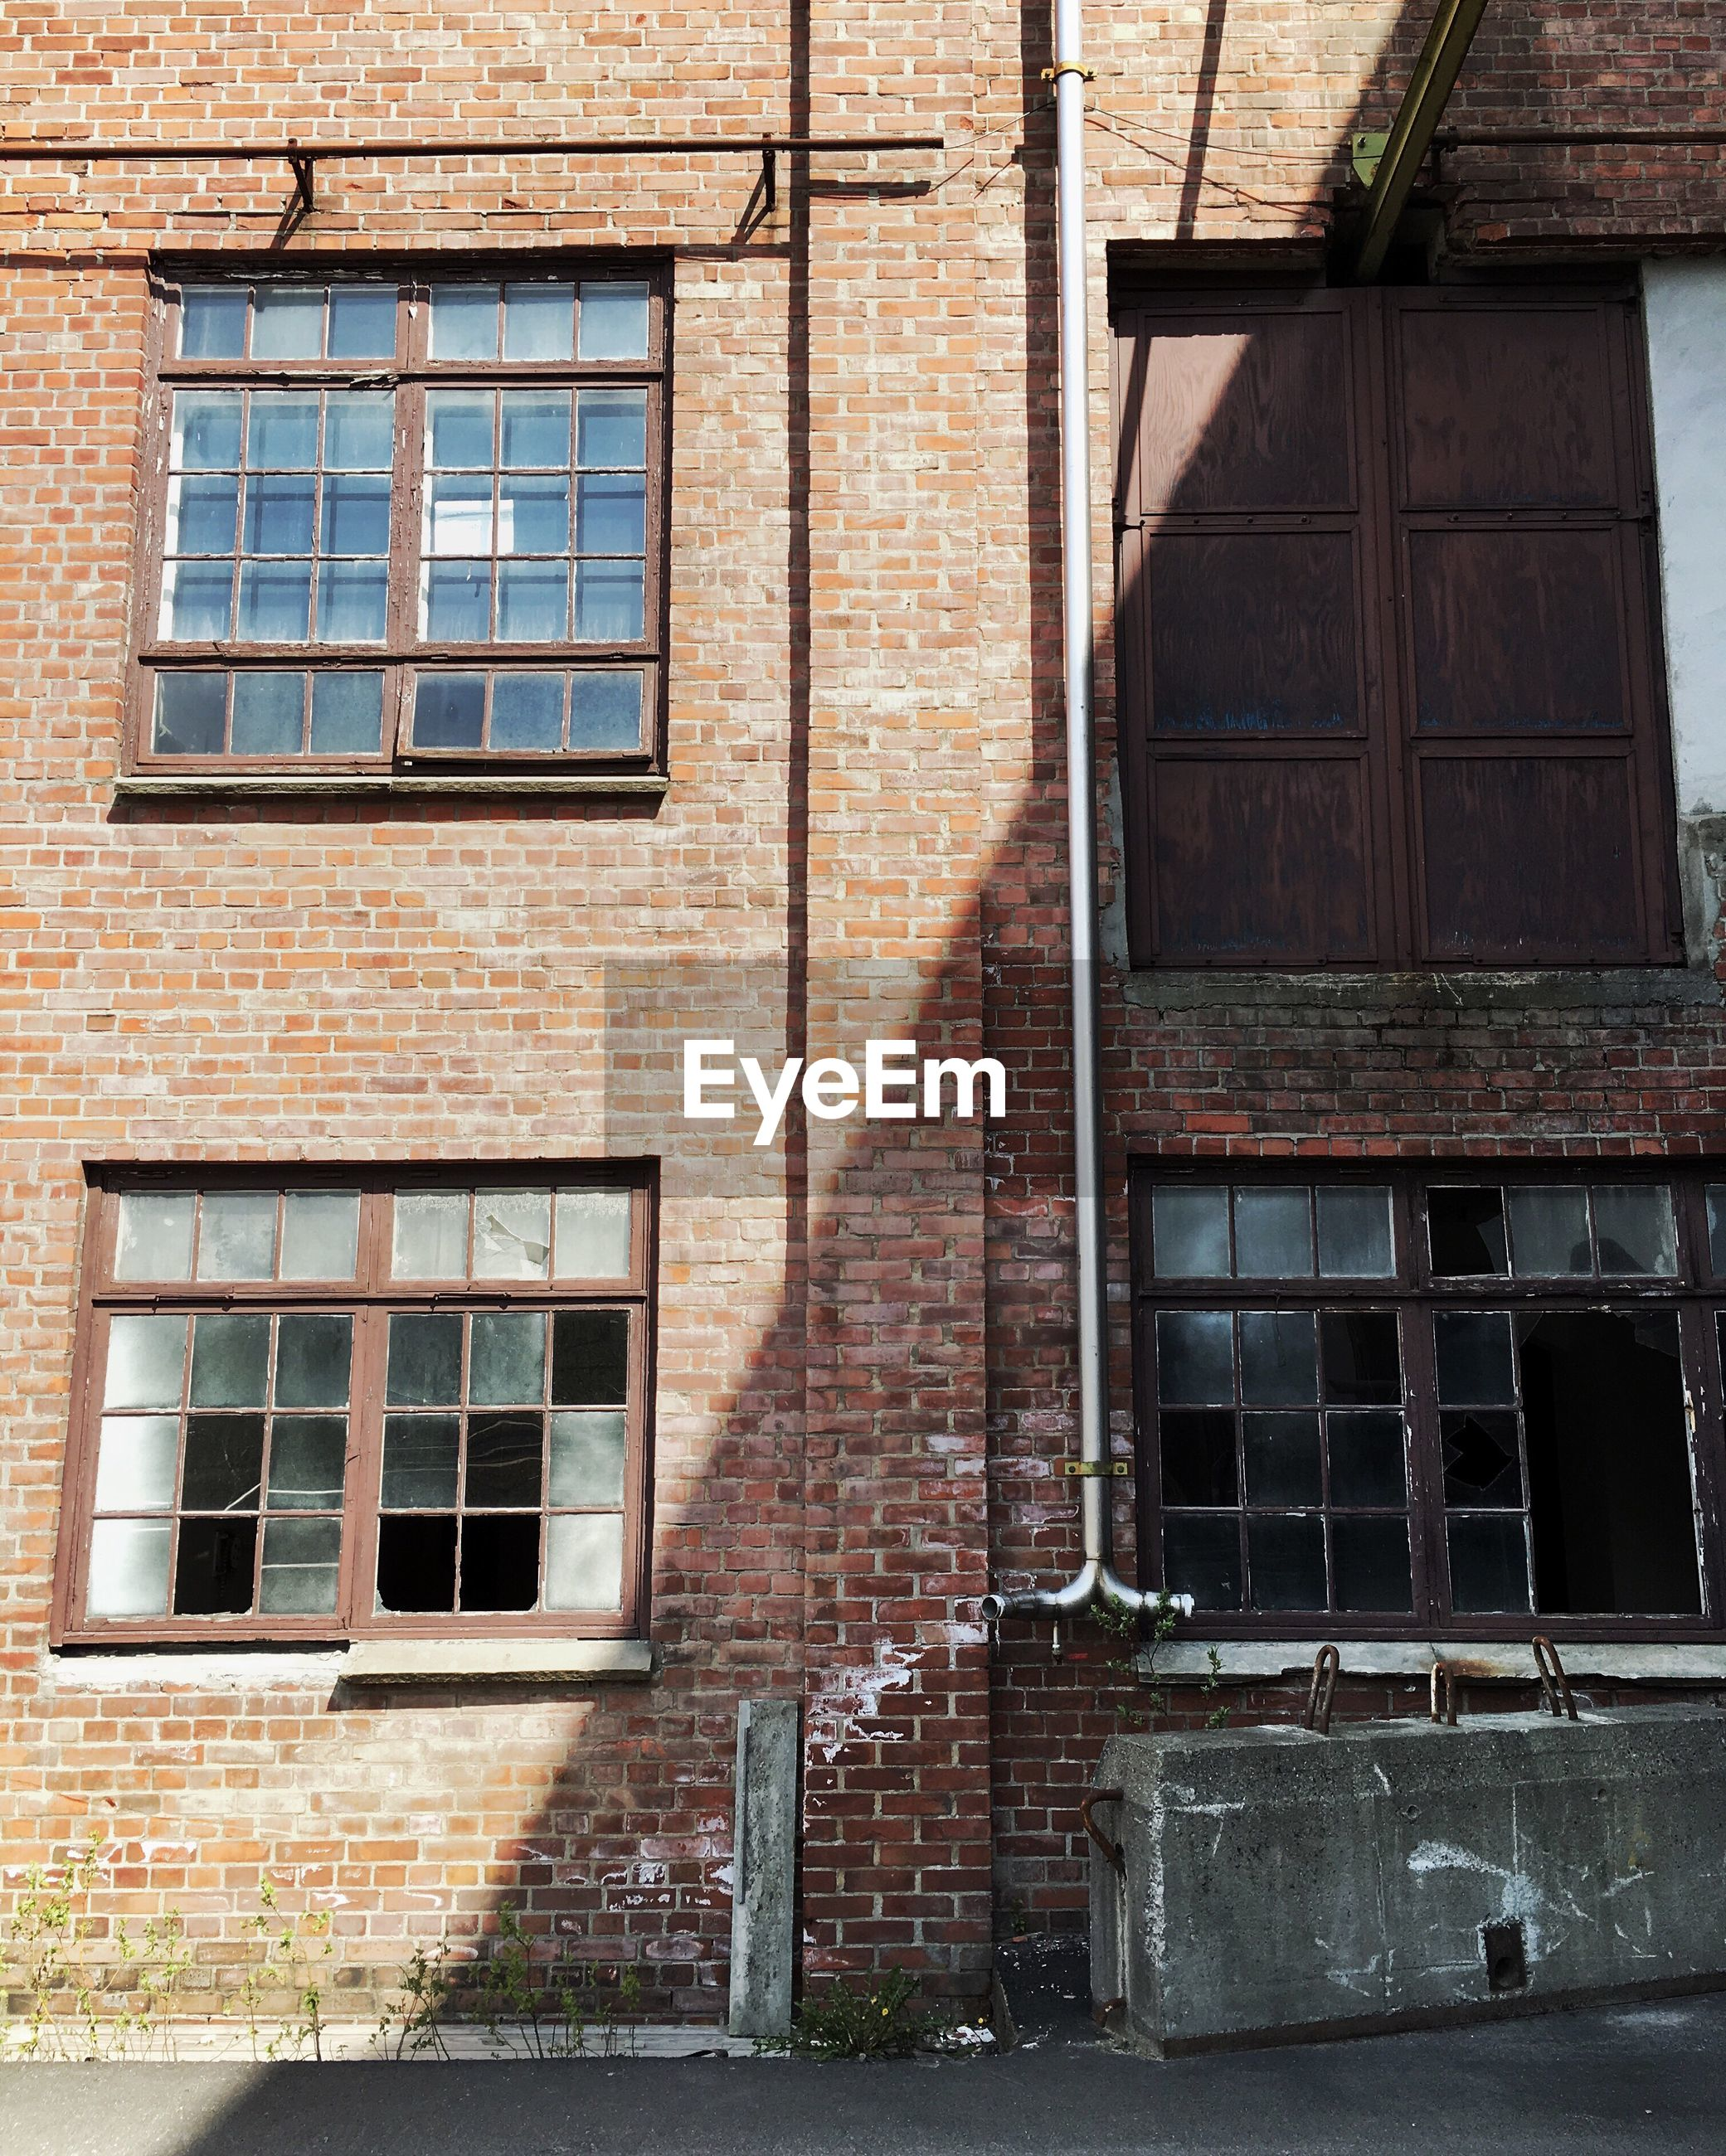 architecture, building exterior, built structure, window, low angle view, building, brick wall, residential building, residential structure, old, house, glass - material, day, outdoors, wall - building feature, no people, exterior, city, weathered, wall